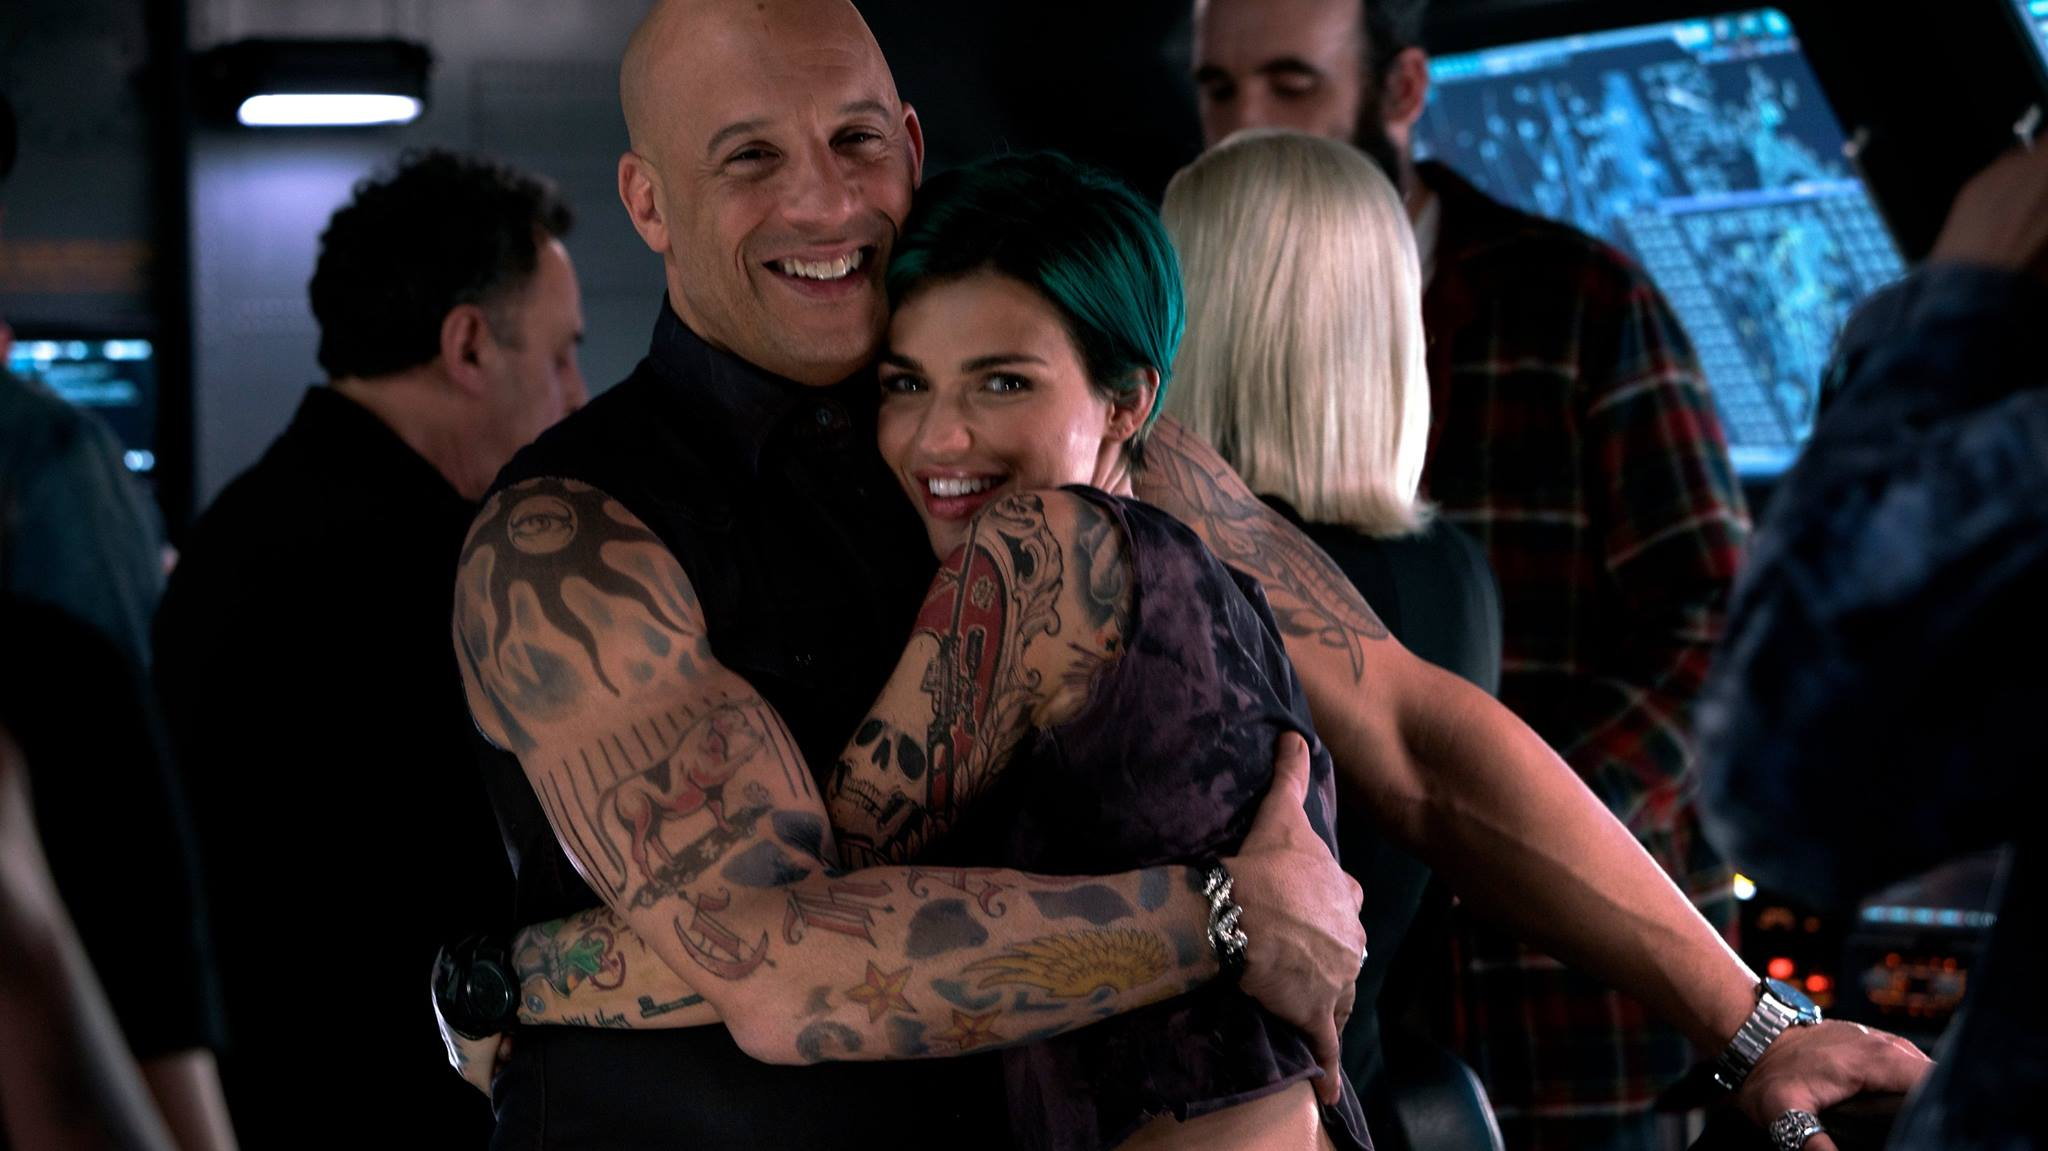 xXx: Return of Xander Cage HD pics